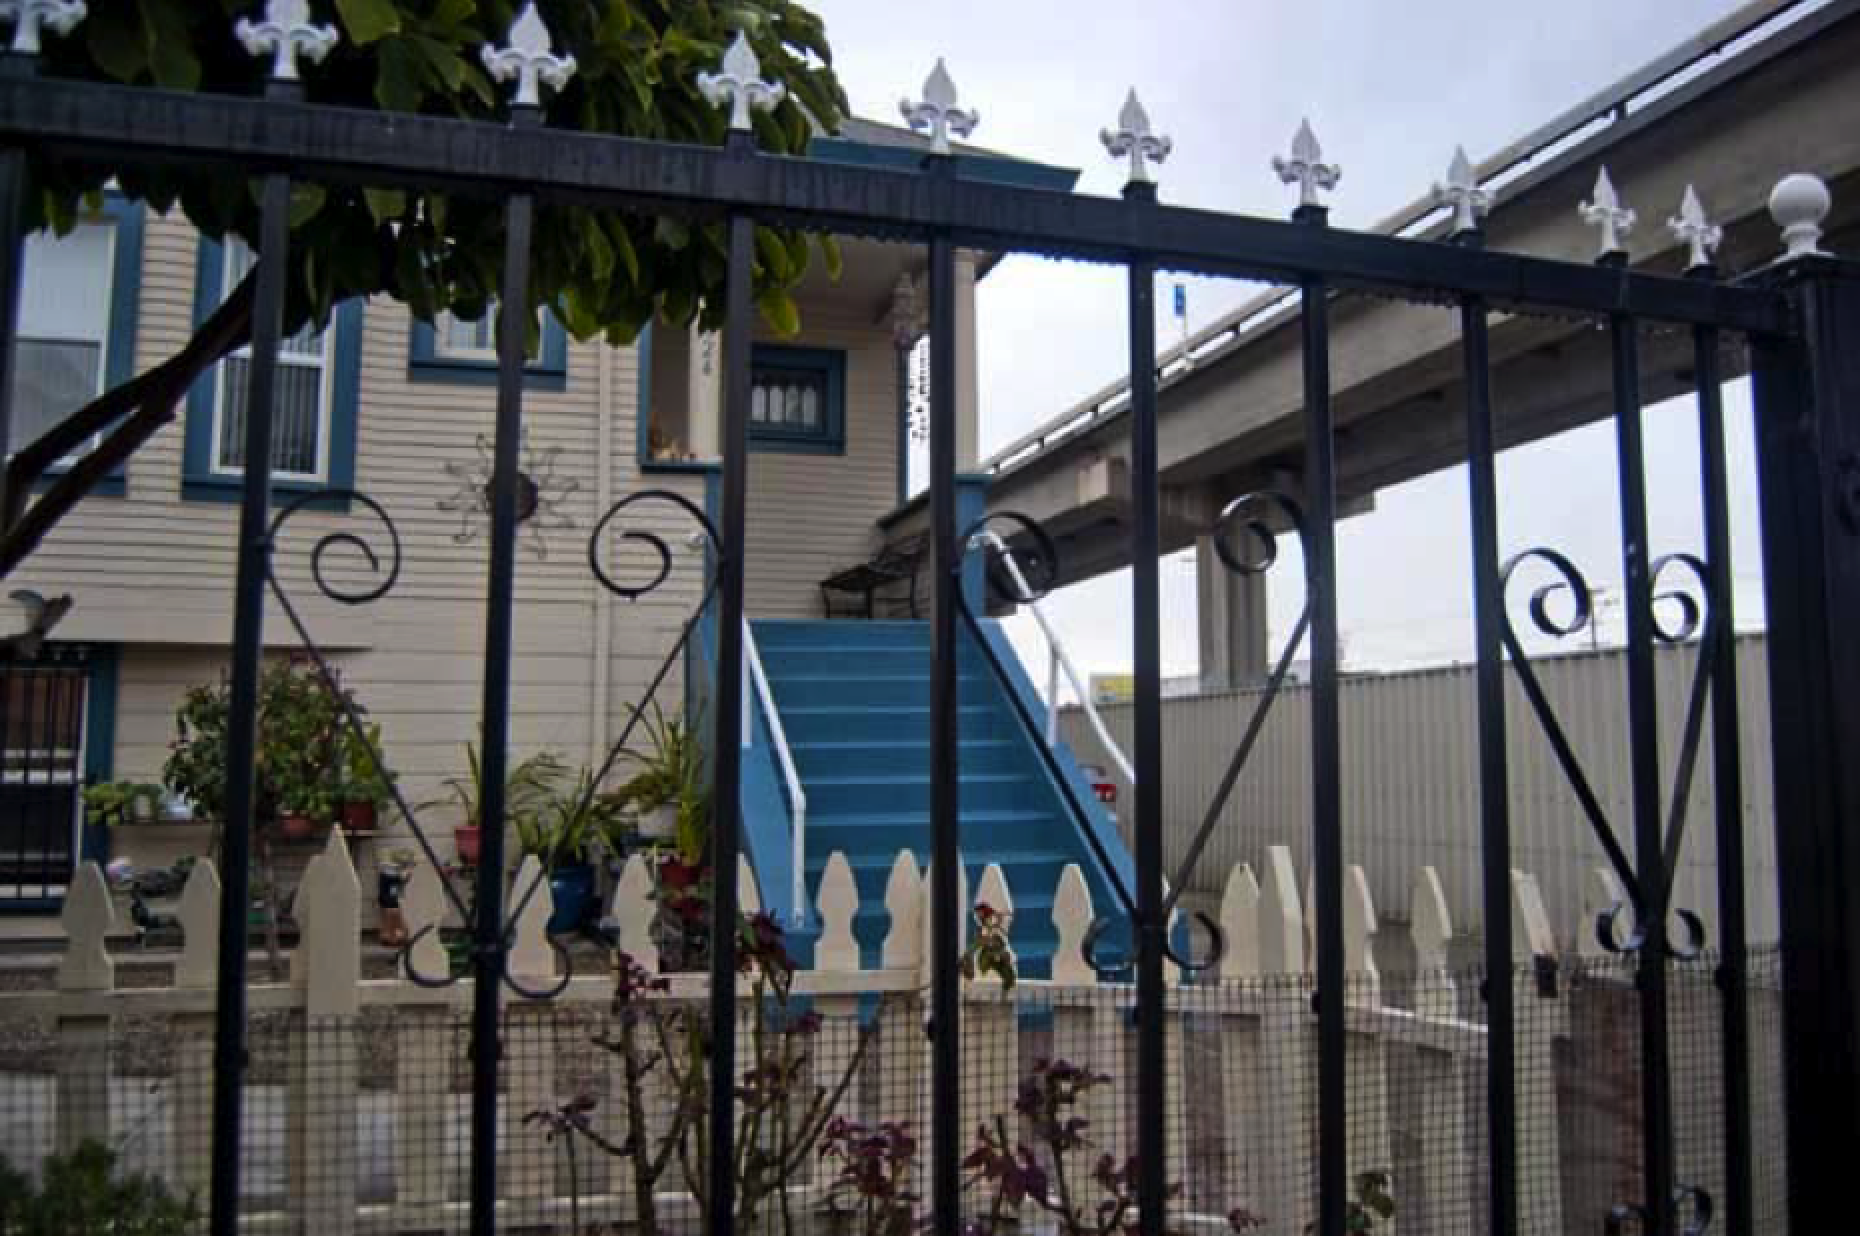 3 layers of fencing surround a home in the Fruitvale district